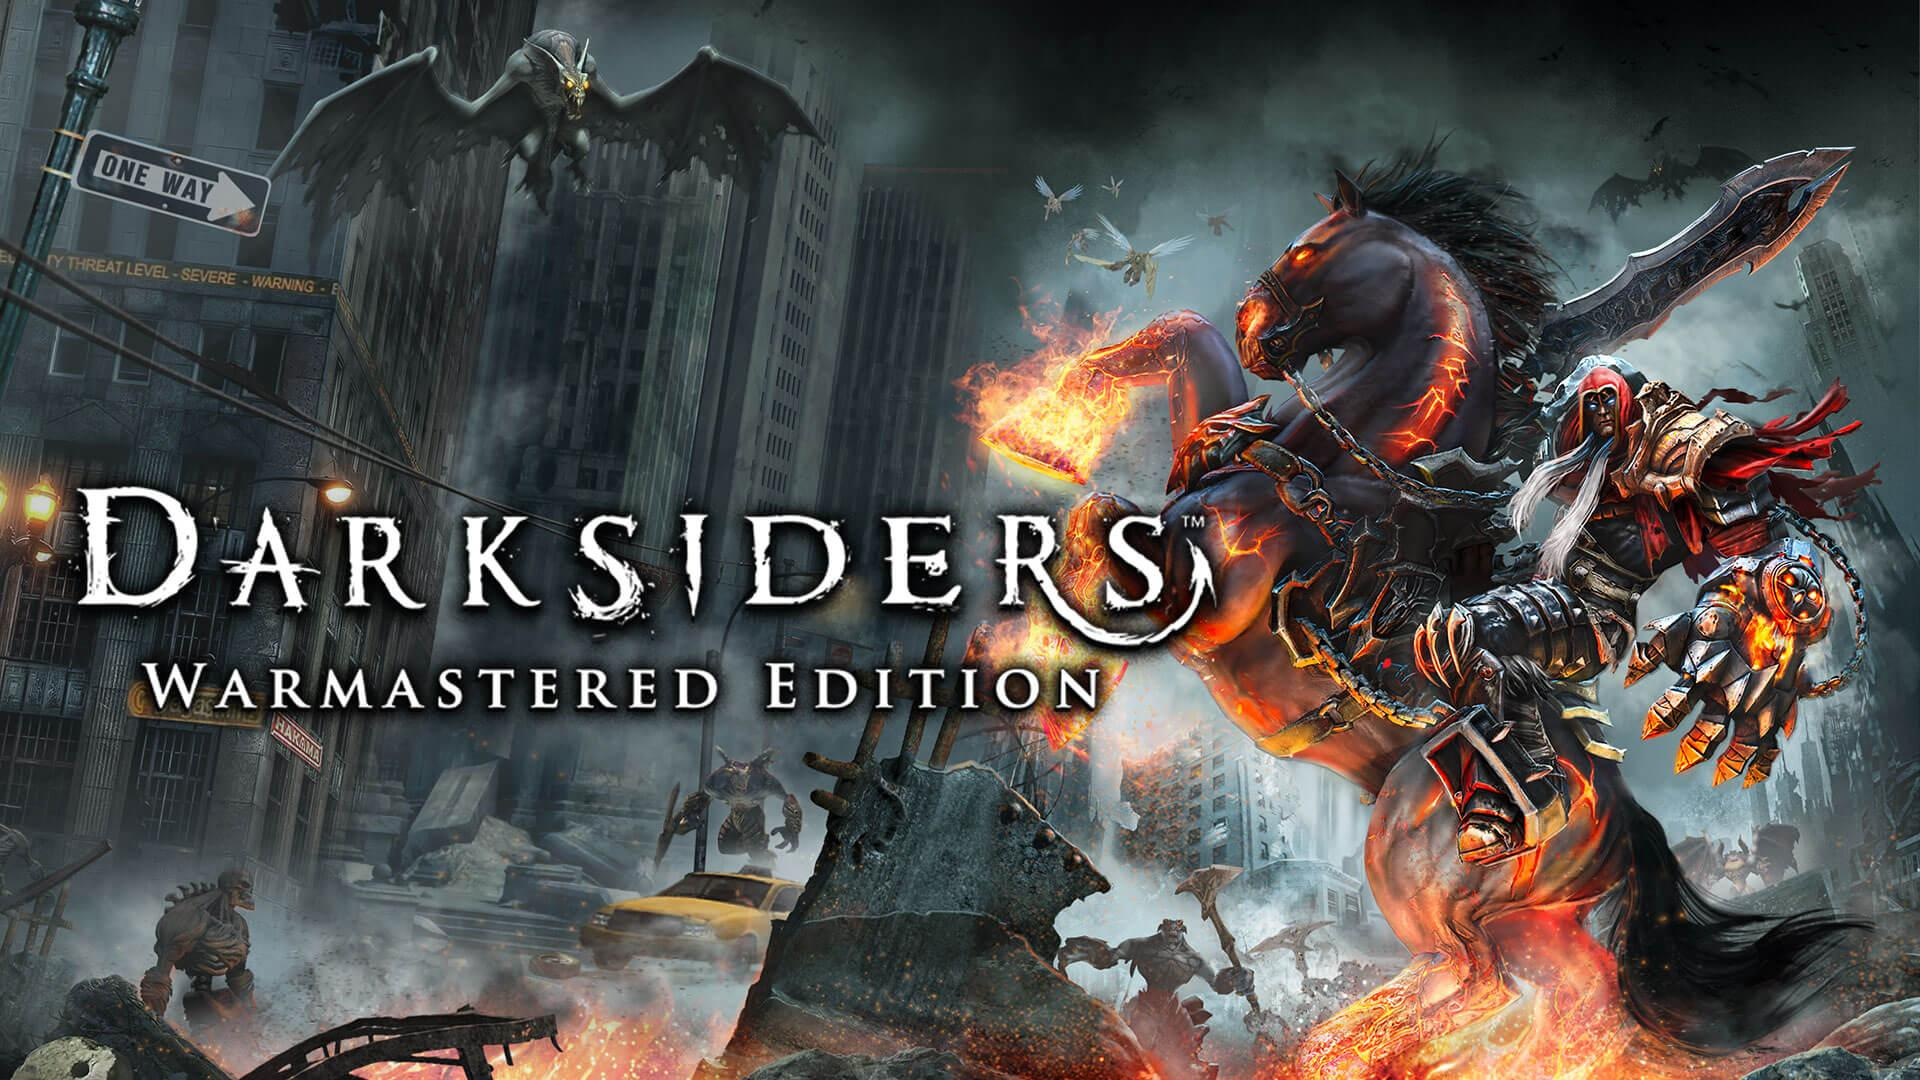 Darksiders 1 PC Latest Version Free Download